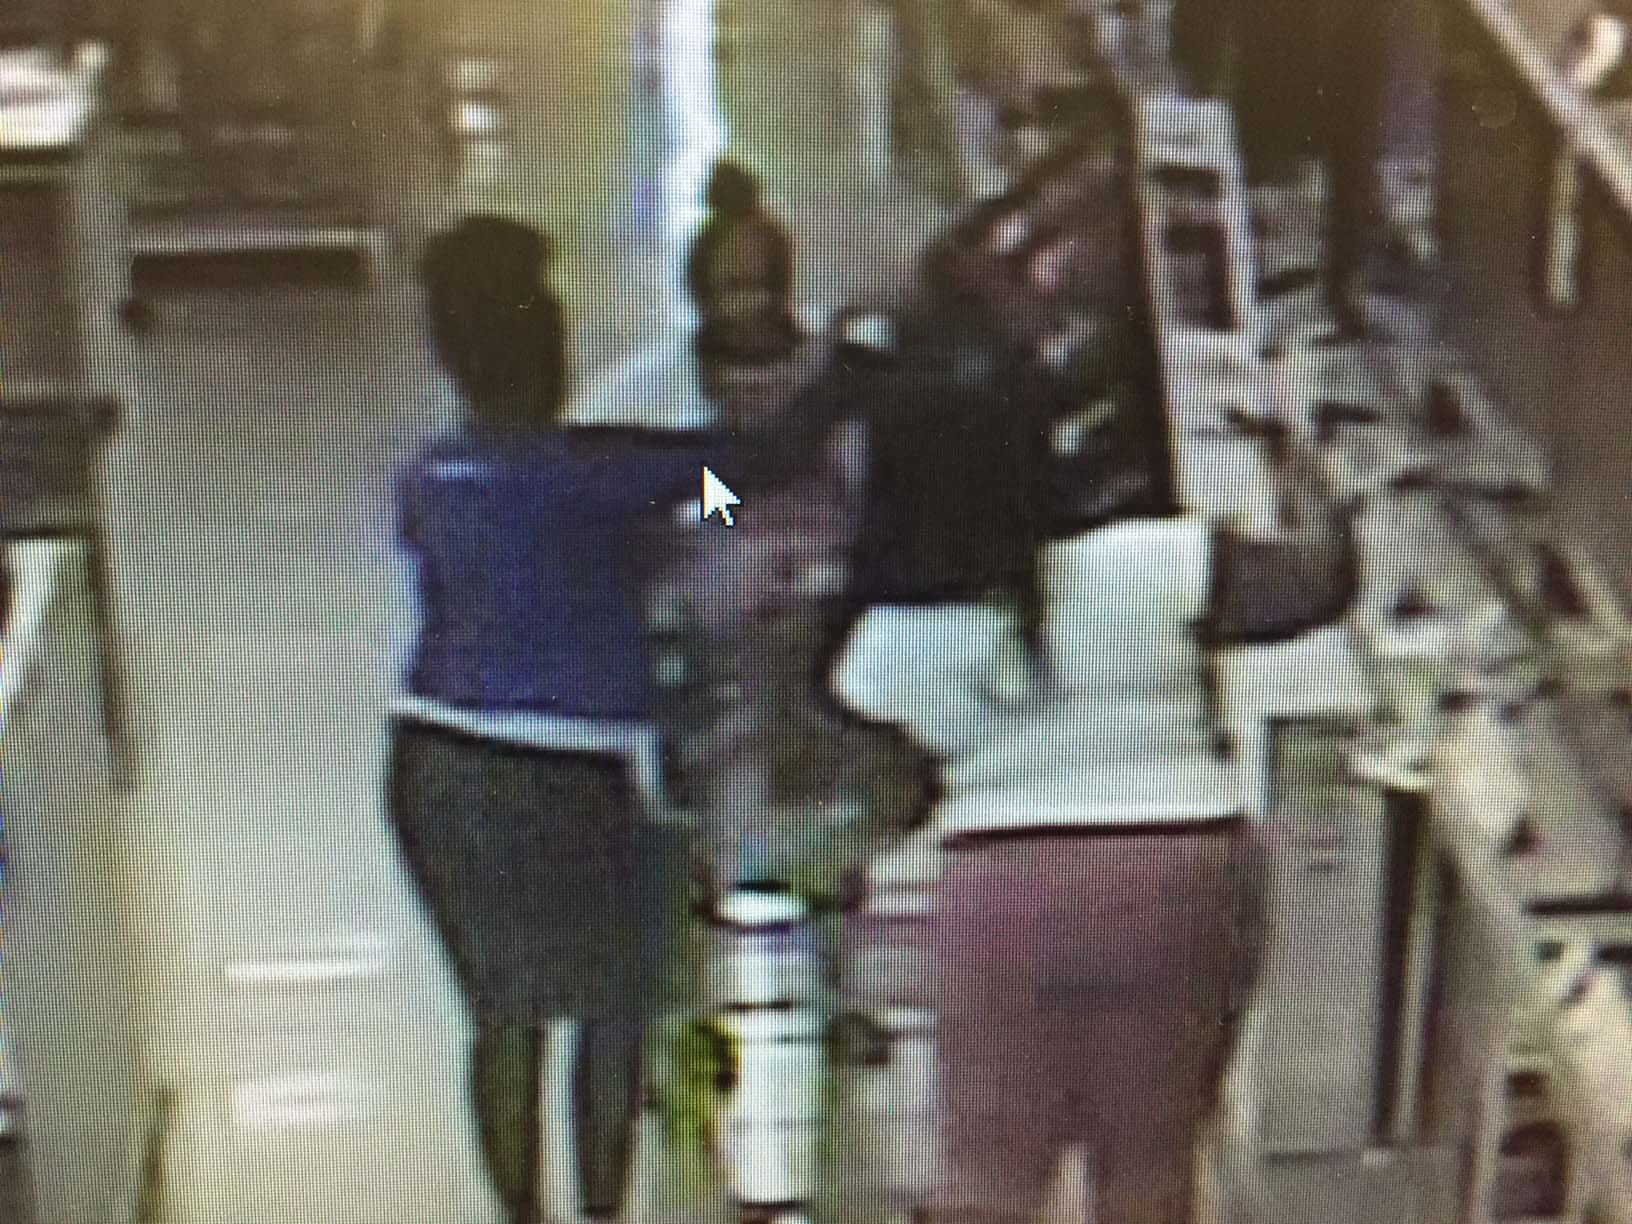 Surveillance Photo: Suspects loading first TV into cart